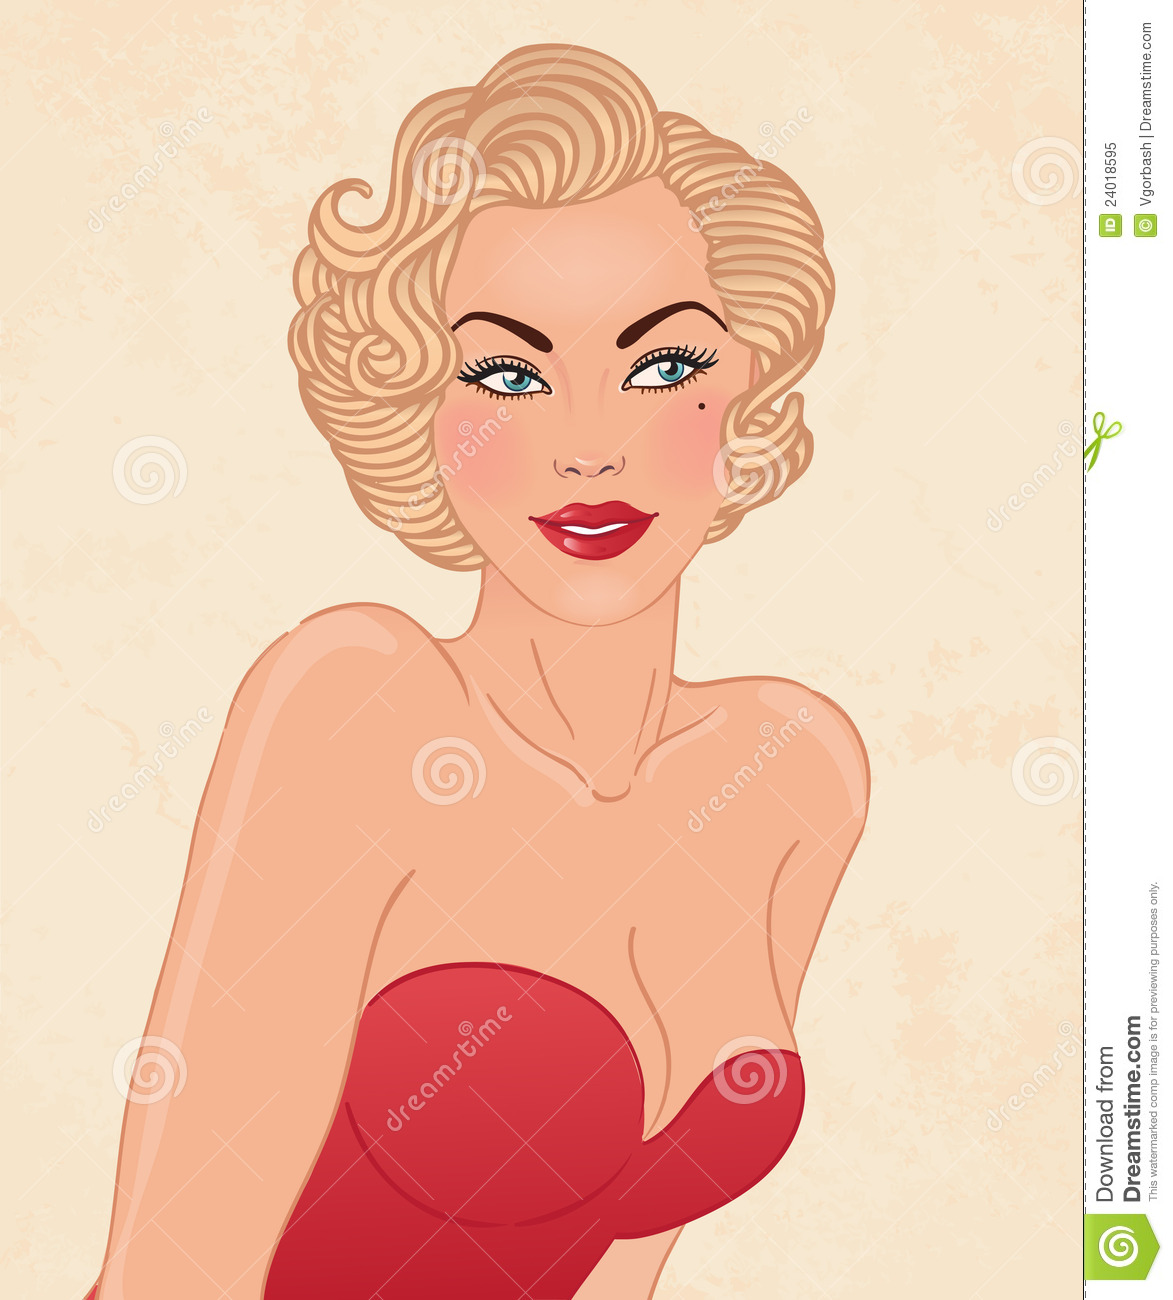 Young Pretty Blonde Woman In 1950 S Style Royalty Free Stock Photo Image 24018595